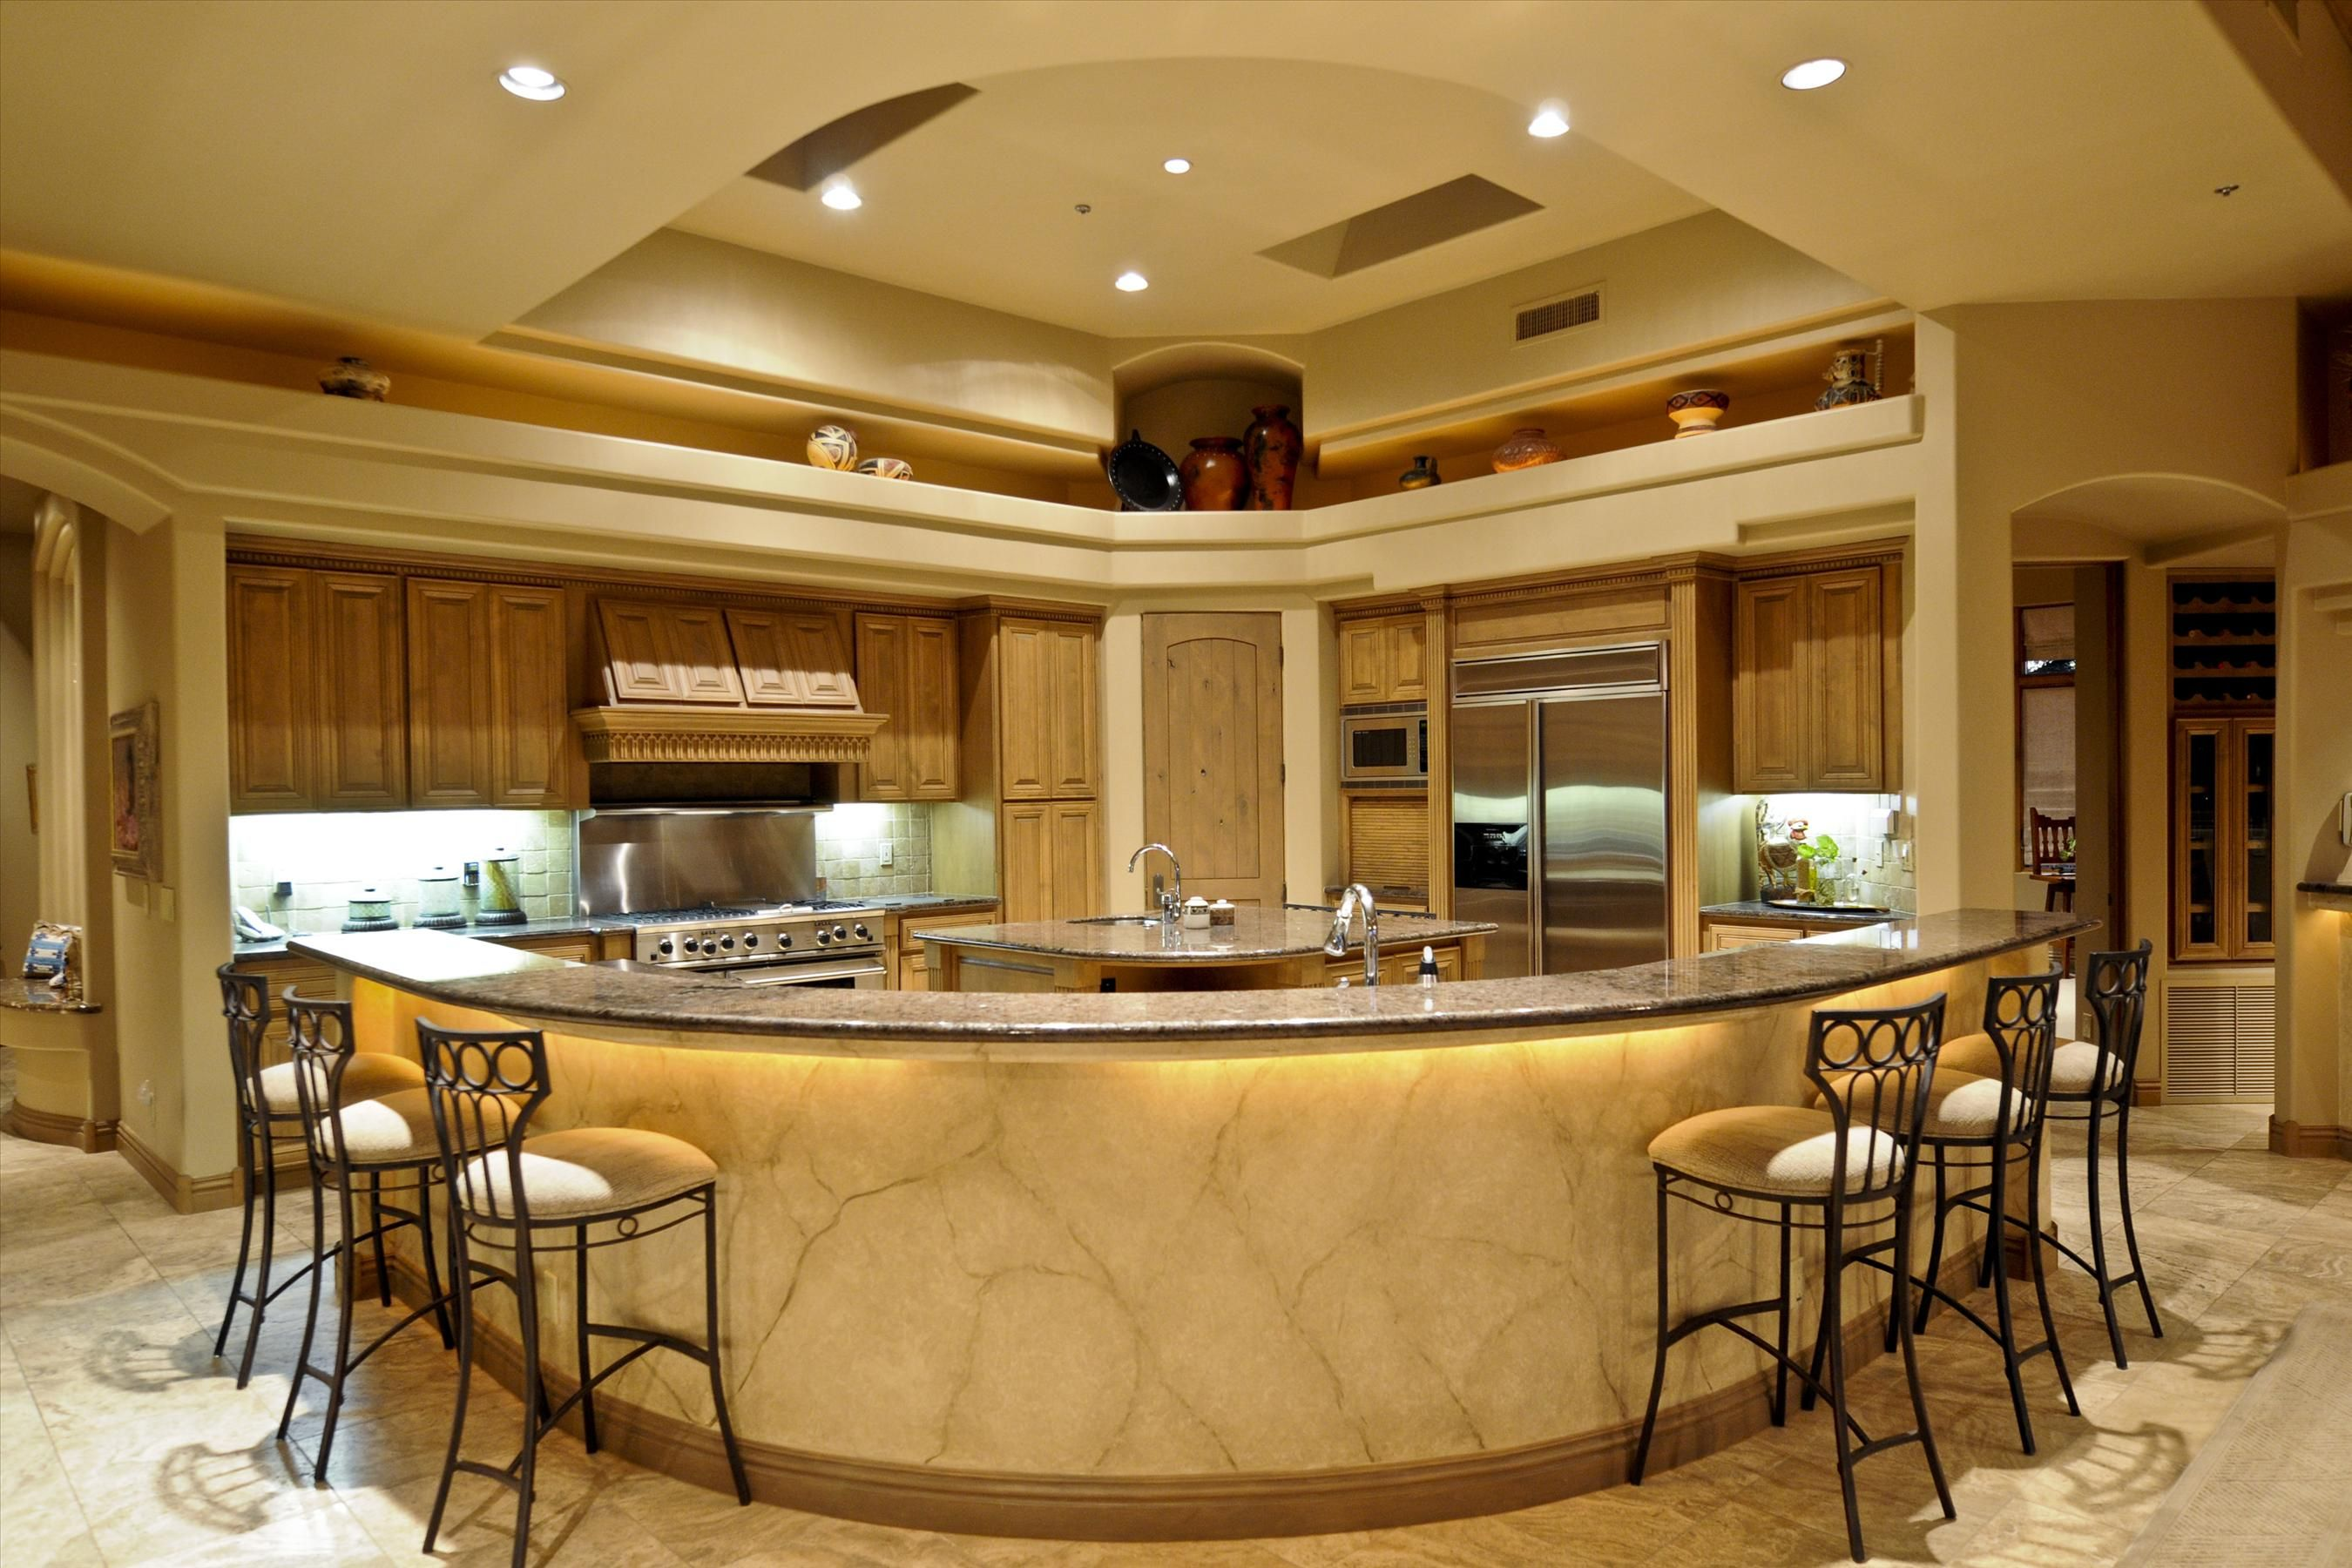 Premier luxury kitchens custom designed and professionally installed by our kitchendesigns - Home plans with large kitchens ...